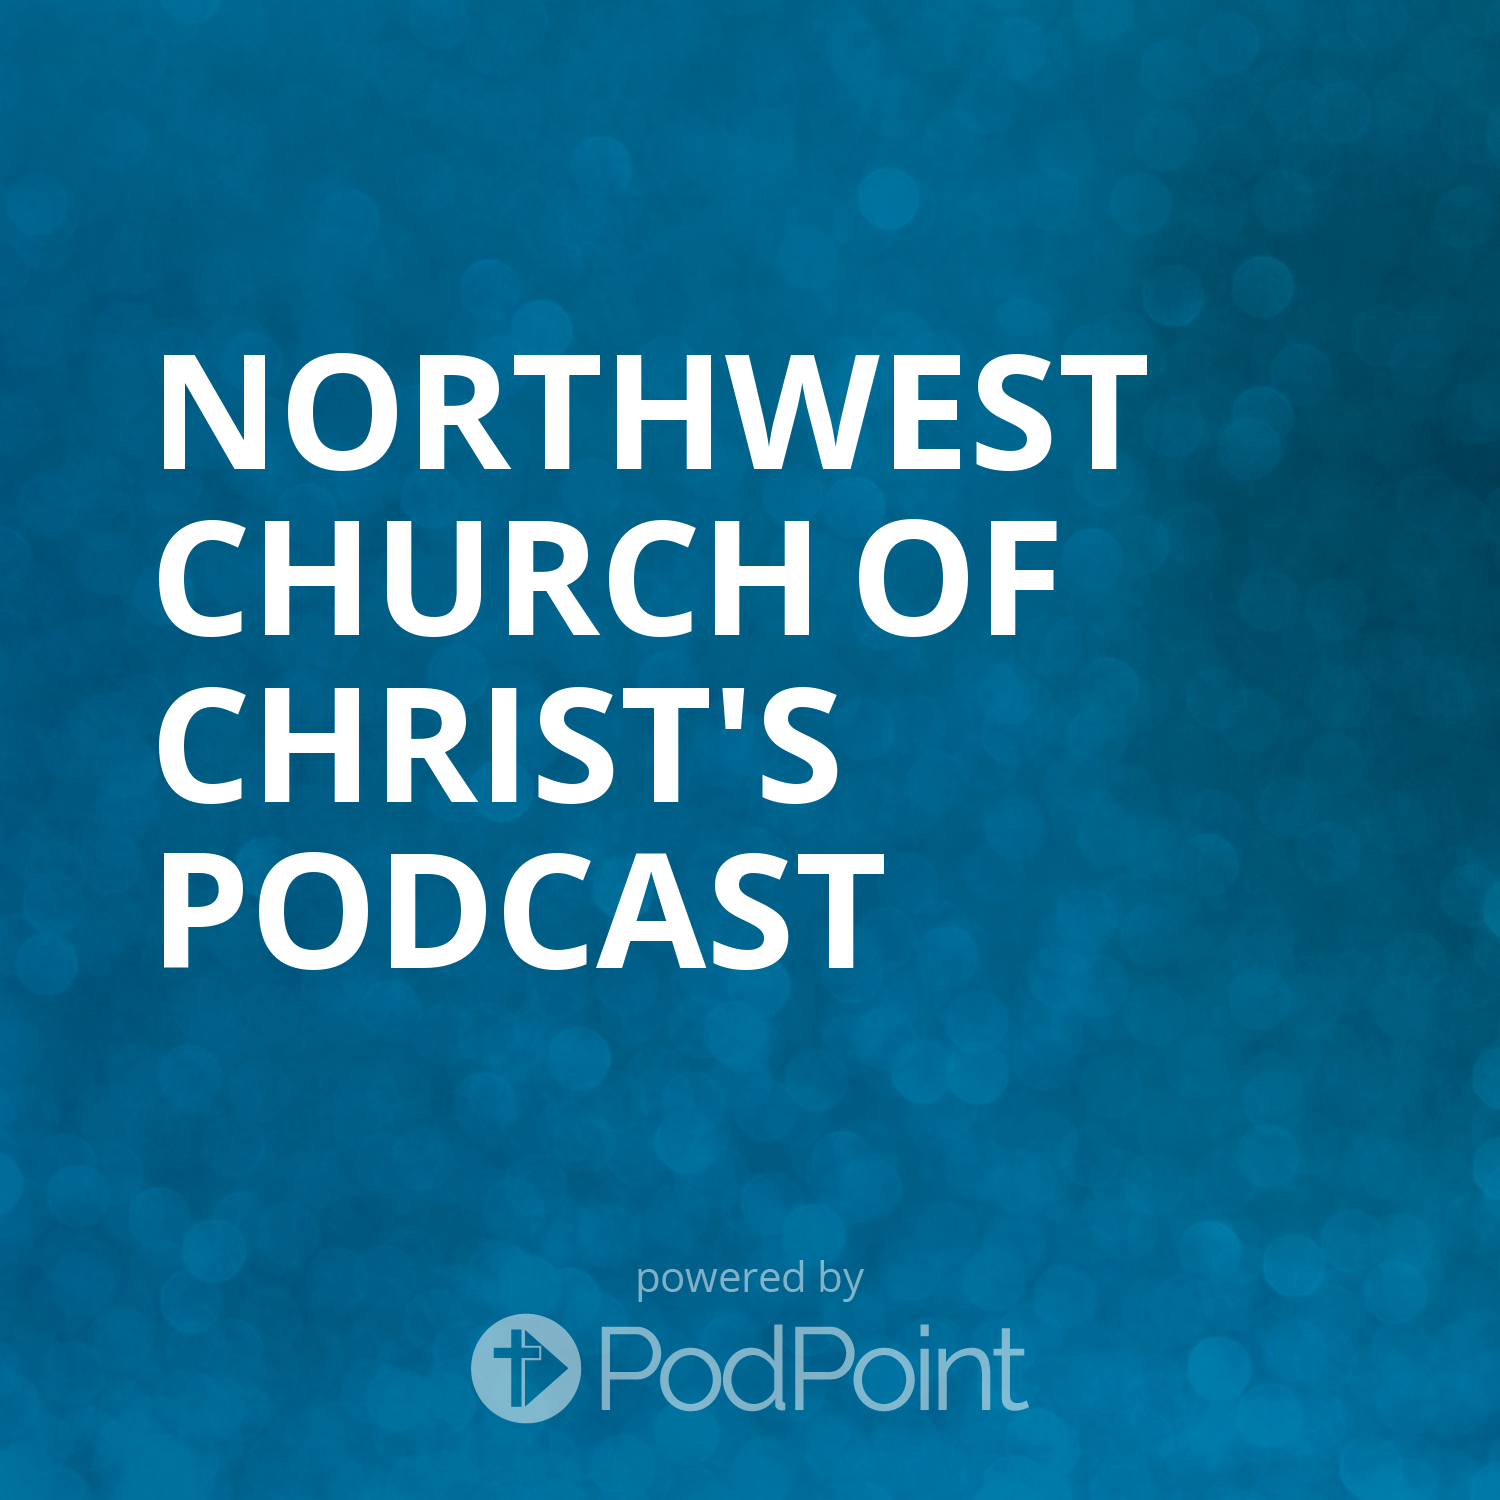 Northwest Church of Christ's Podcast